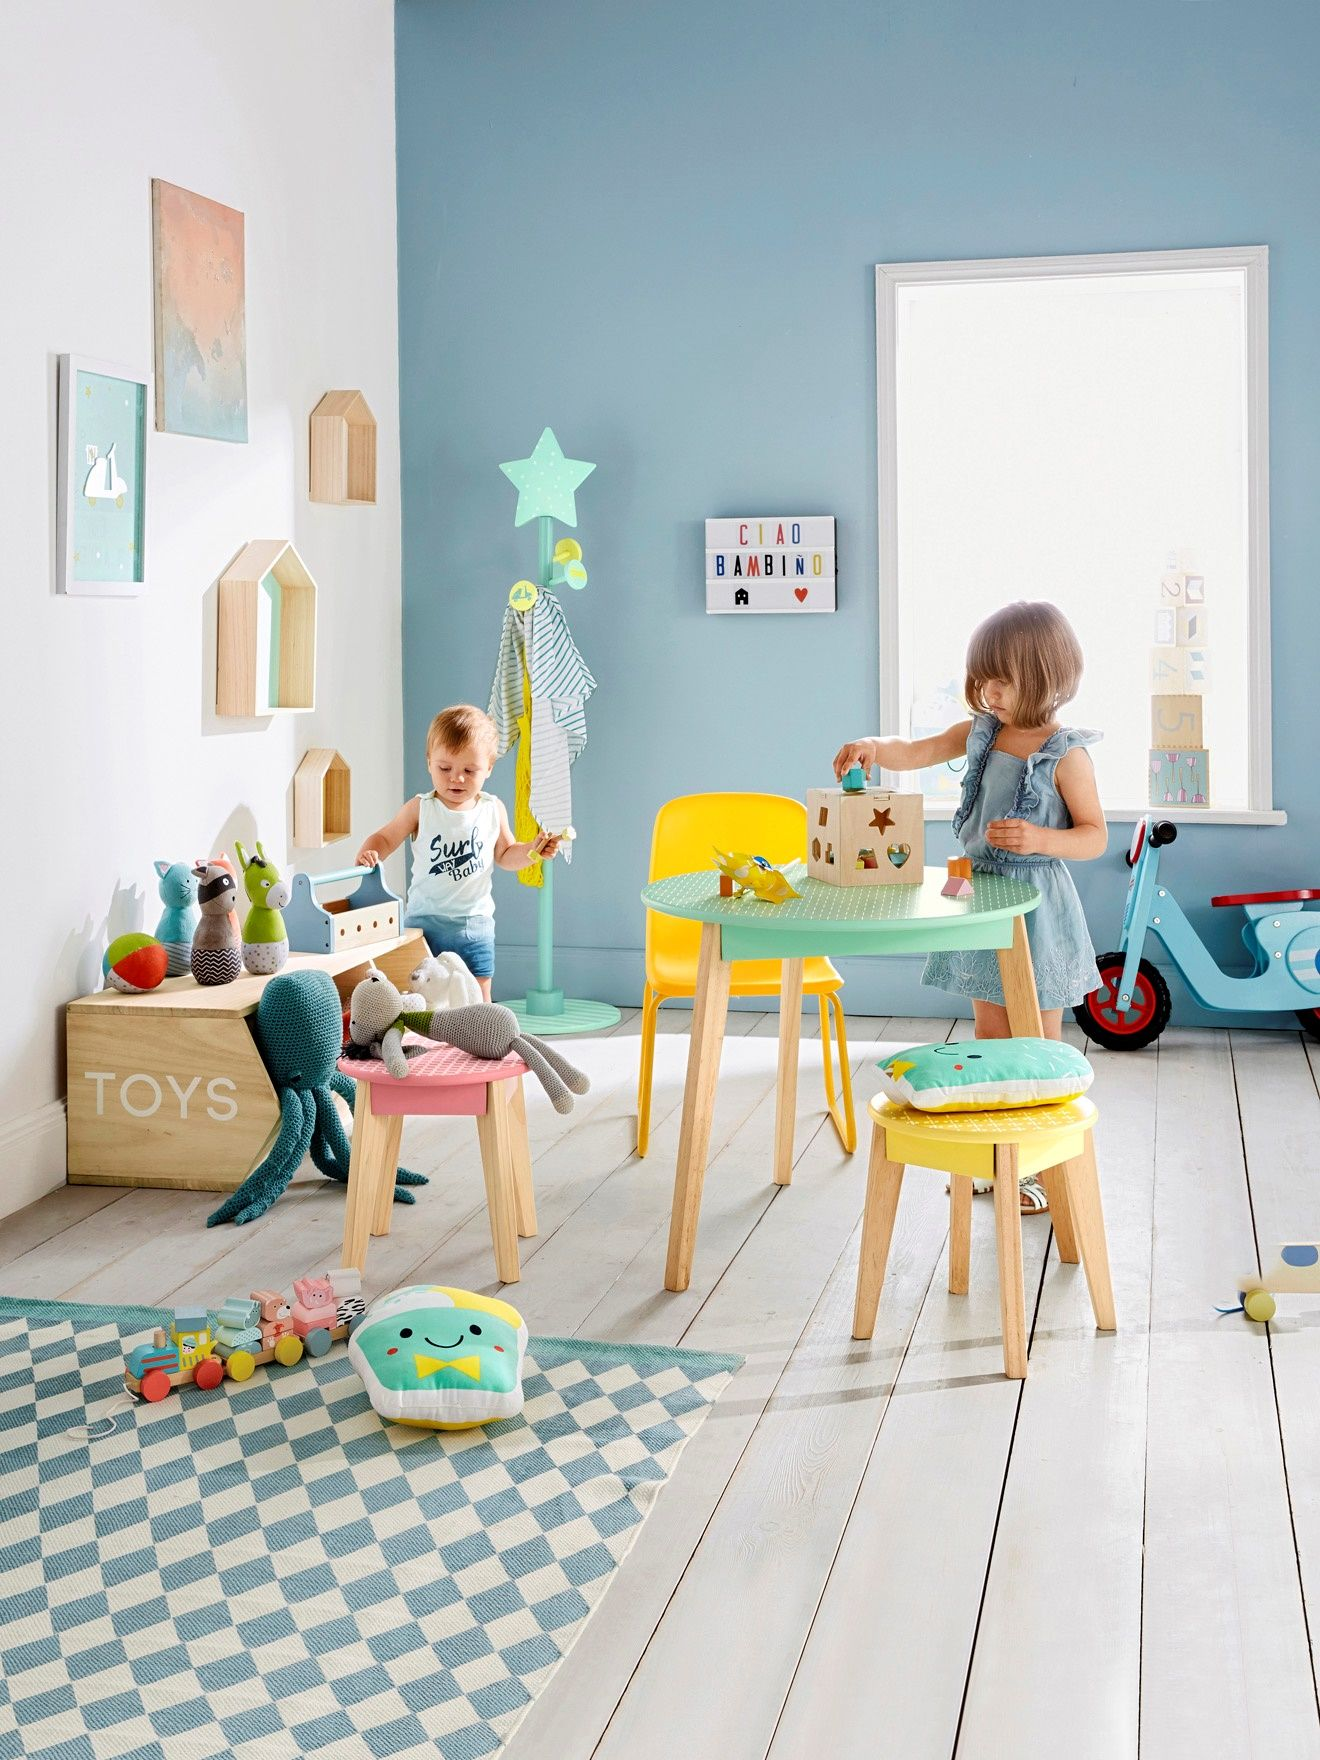 Wood Effect Kids Playroom Bedroom Storage Chest Trunk: Stylish 3-box Storage Unit, Colour Of Wood, For Children's